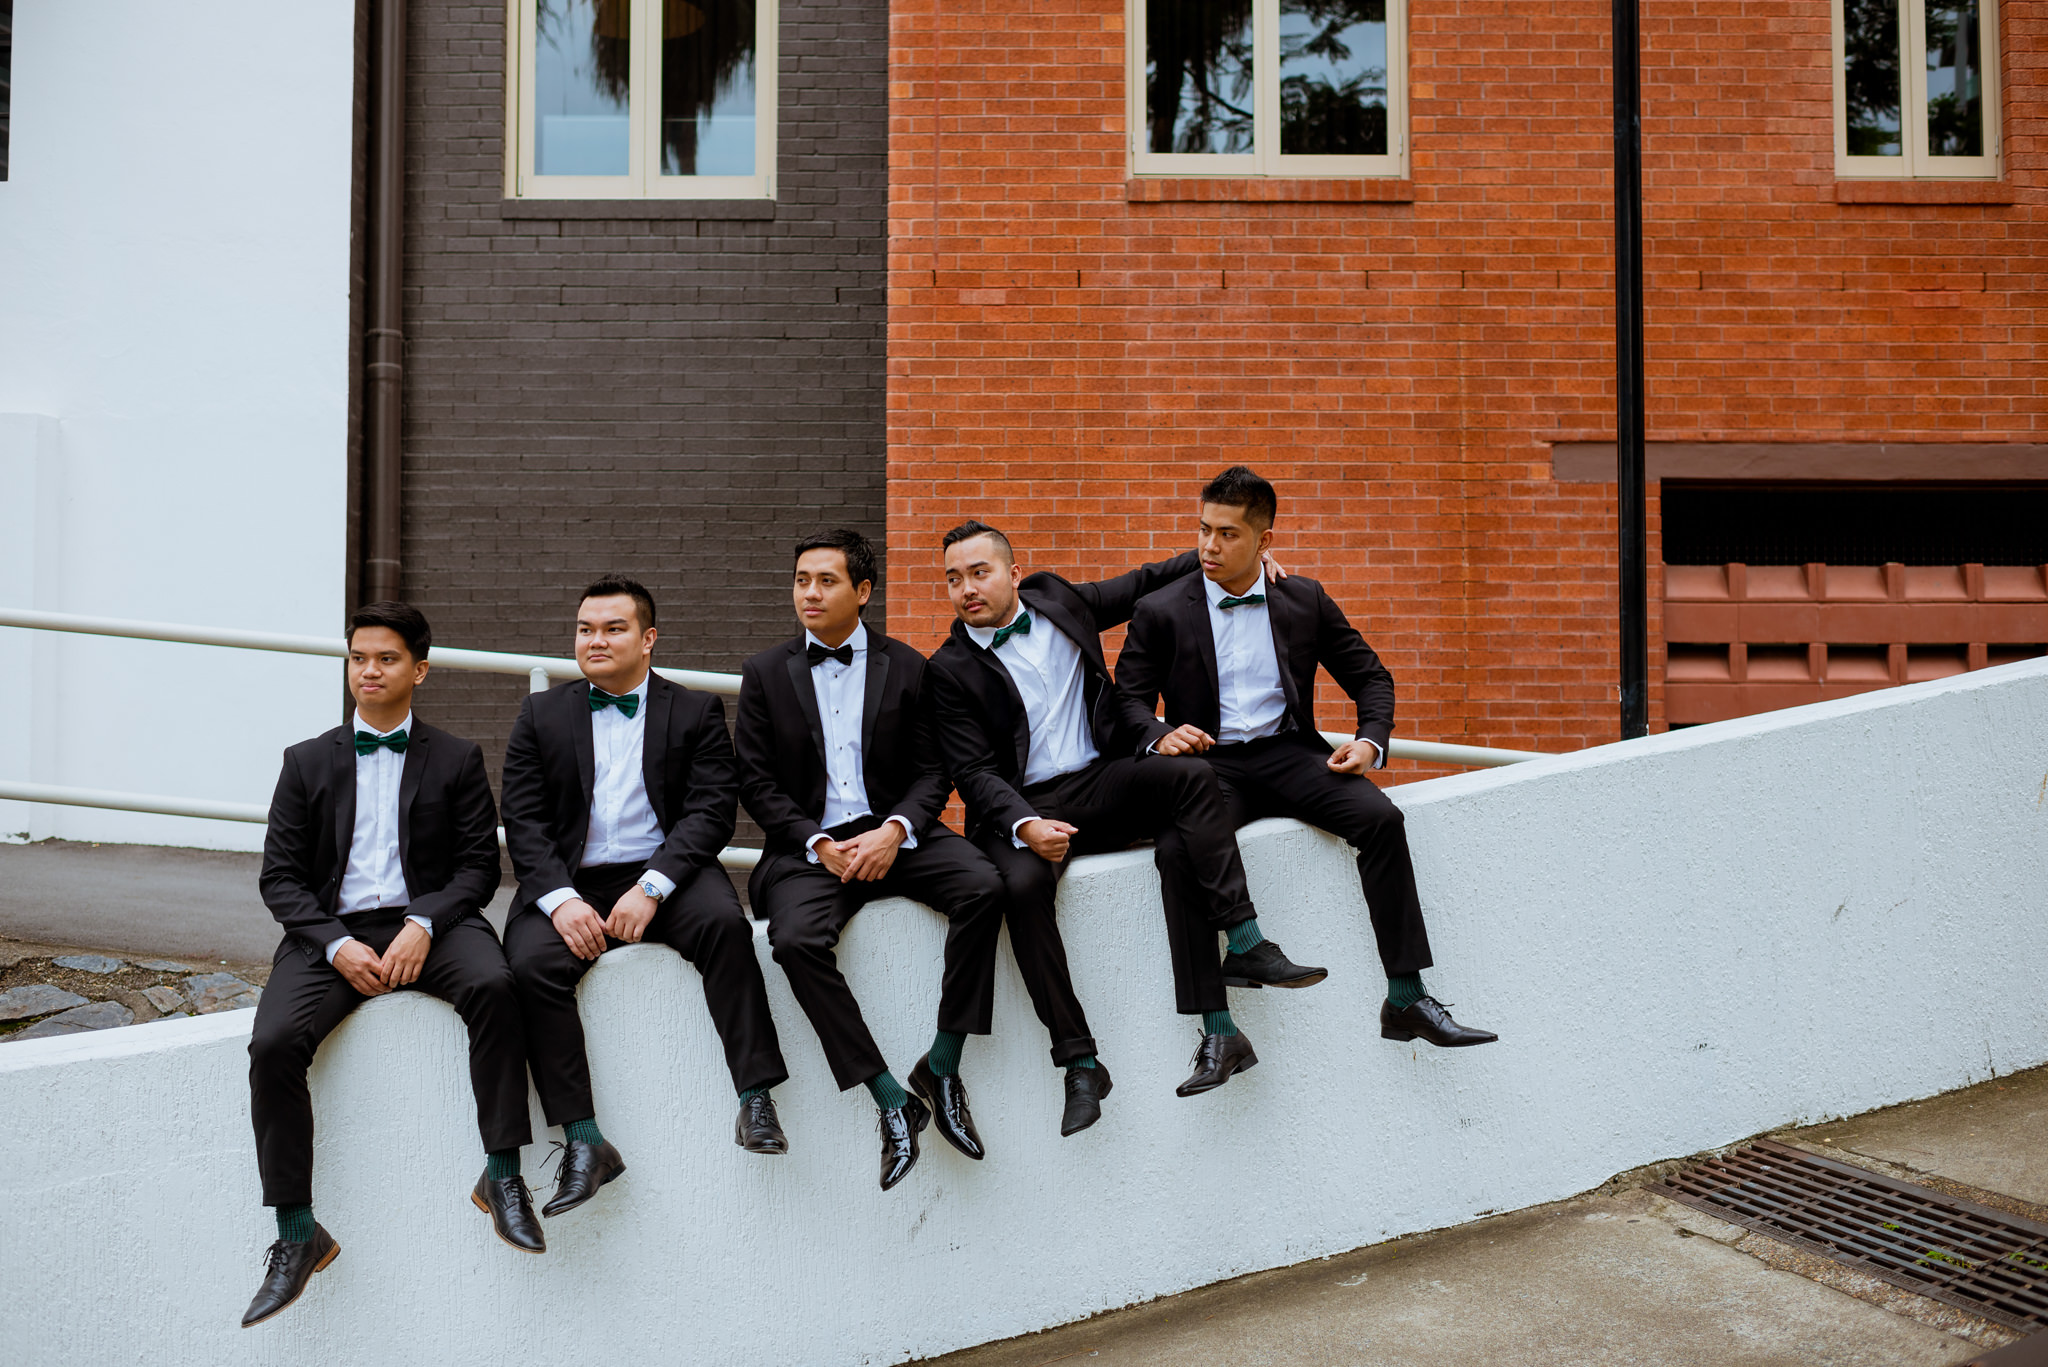 Groom and groomsmen sitting and posing on slanted wall in front of brick walls